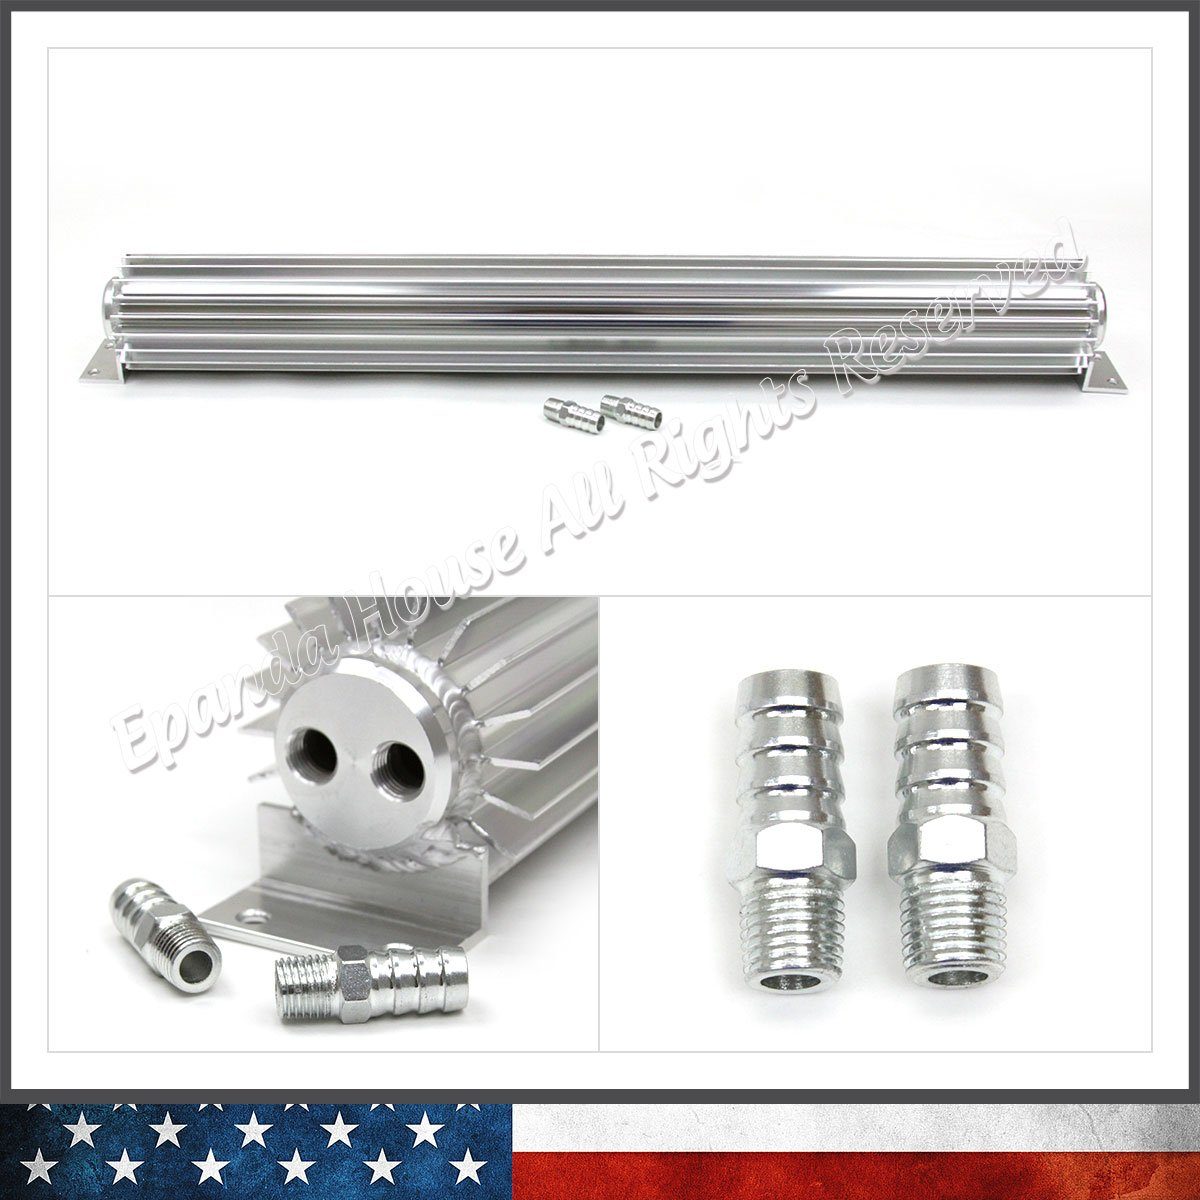 Barb Fittings 24 Hot Rod Finned Aluminum Dual Pass Transmission Cooler Silver